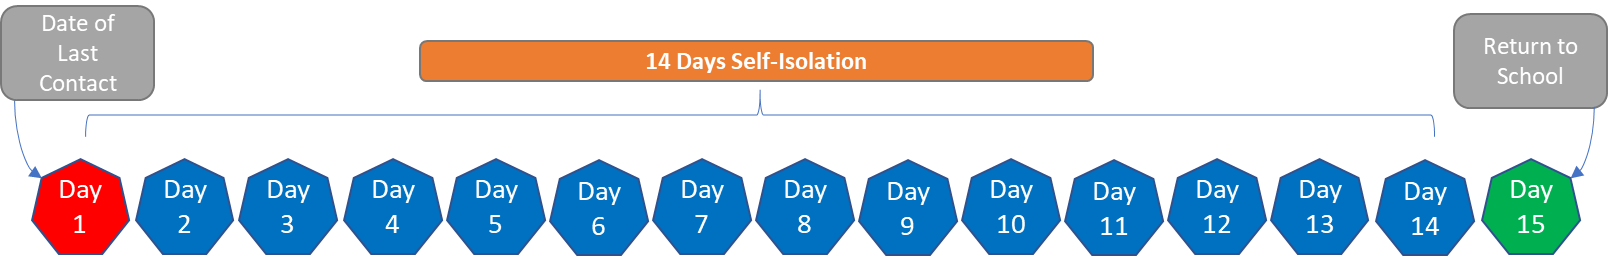 Calculation chart for COVID isolation period